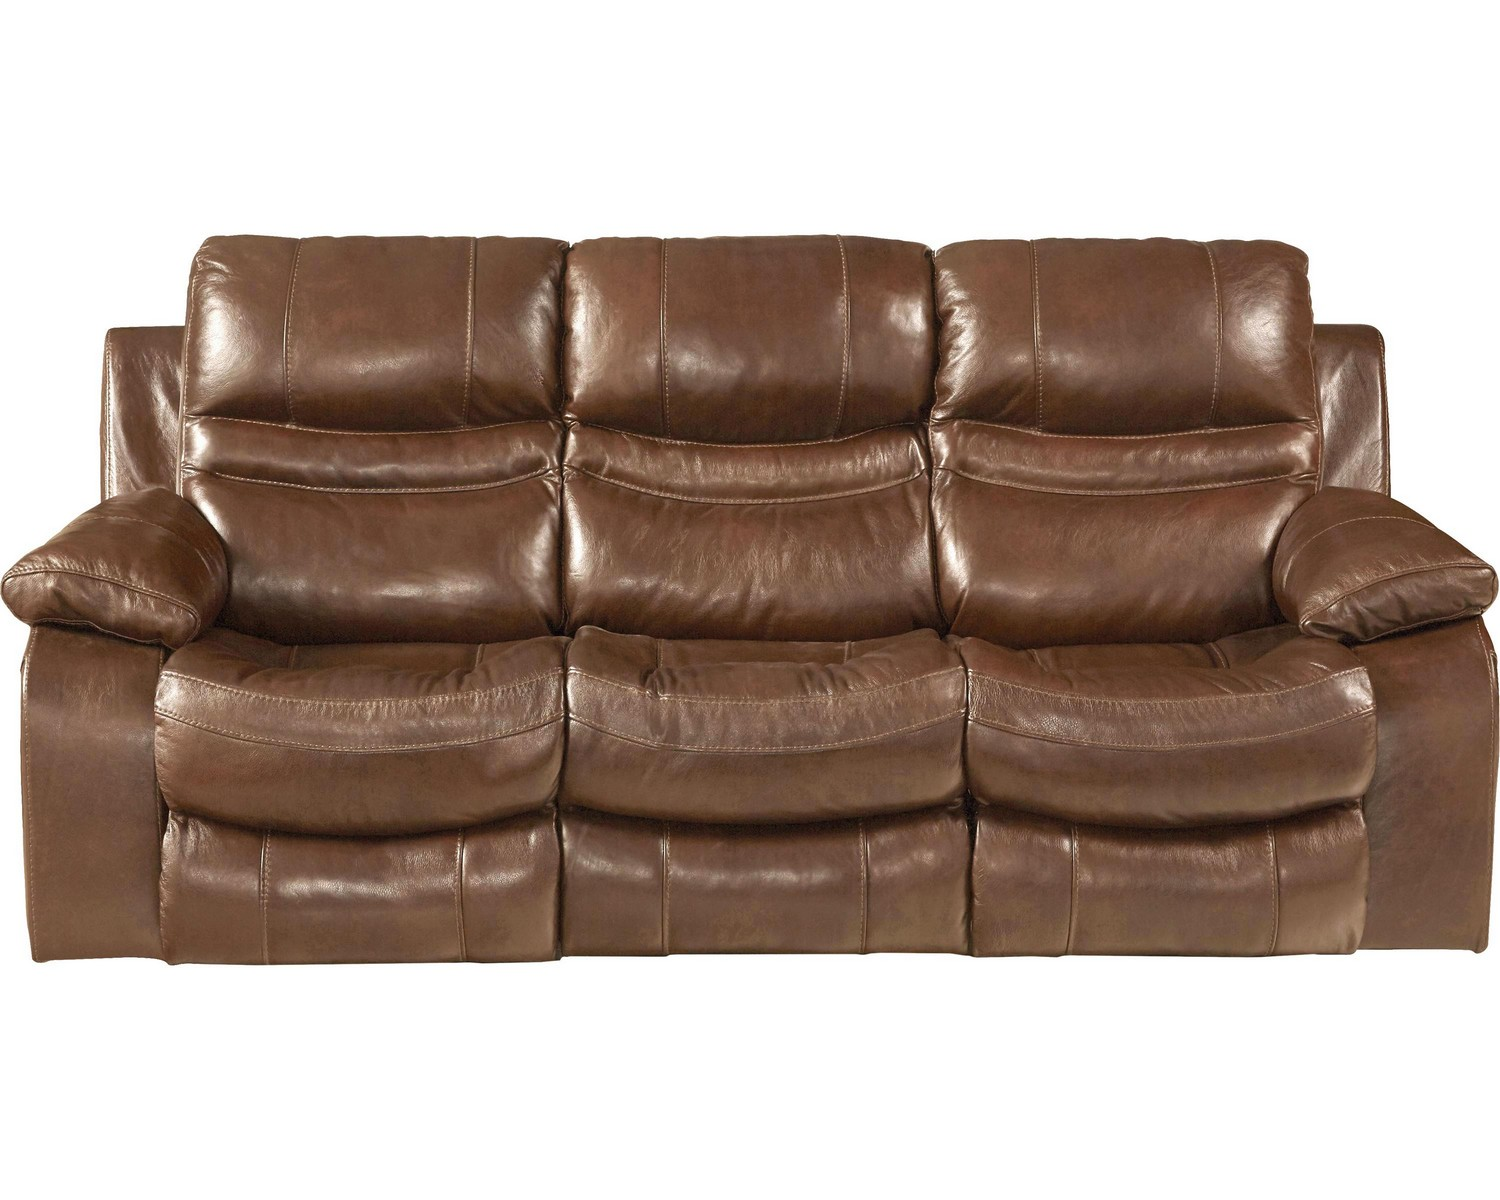 CatNapper Patton Top Grain Italian Leather Lay Flat Power Reclining Sofa - Chestnut